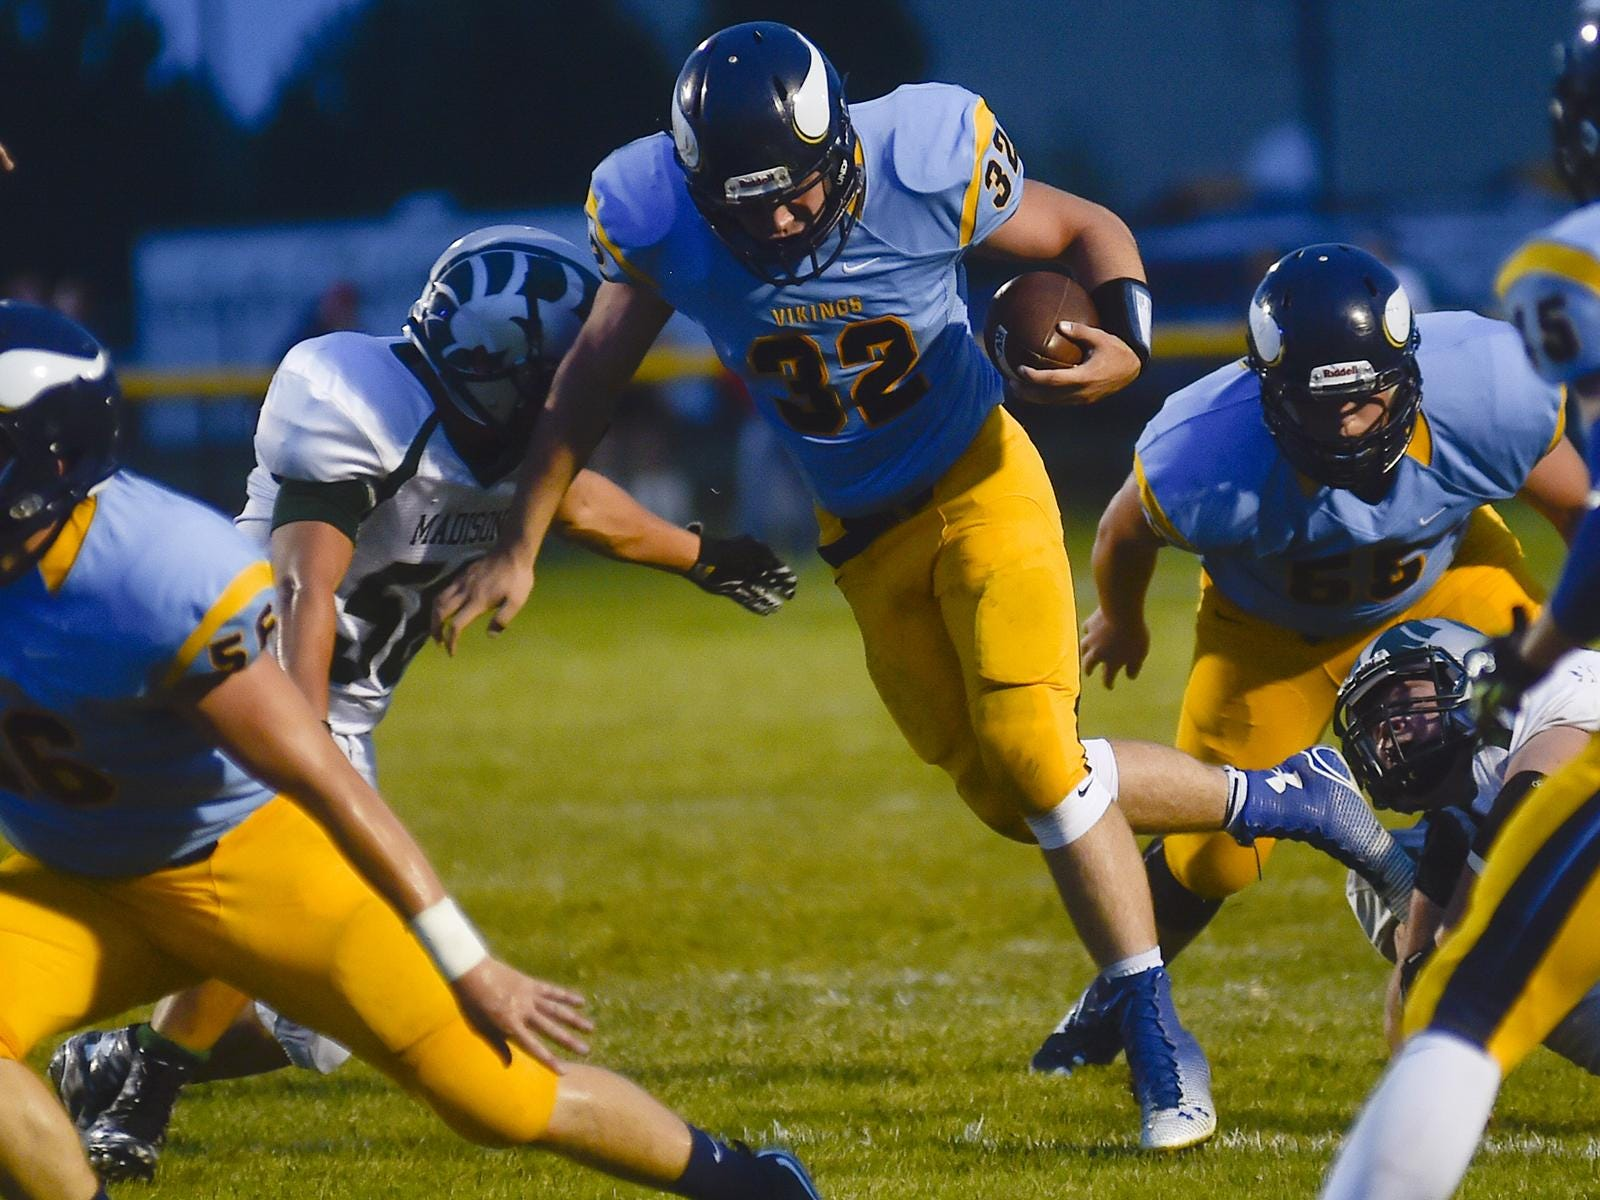 River Valley's Zack Warwick makes breaks for a hole in the Ram's defense during the Madison vs River Valley football game on Friday.